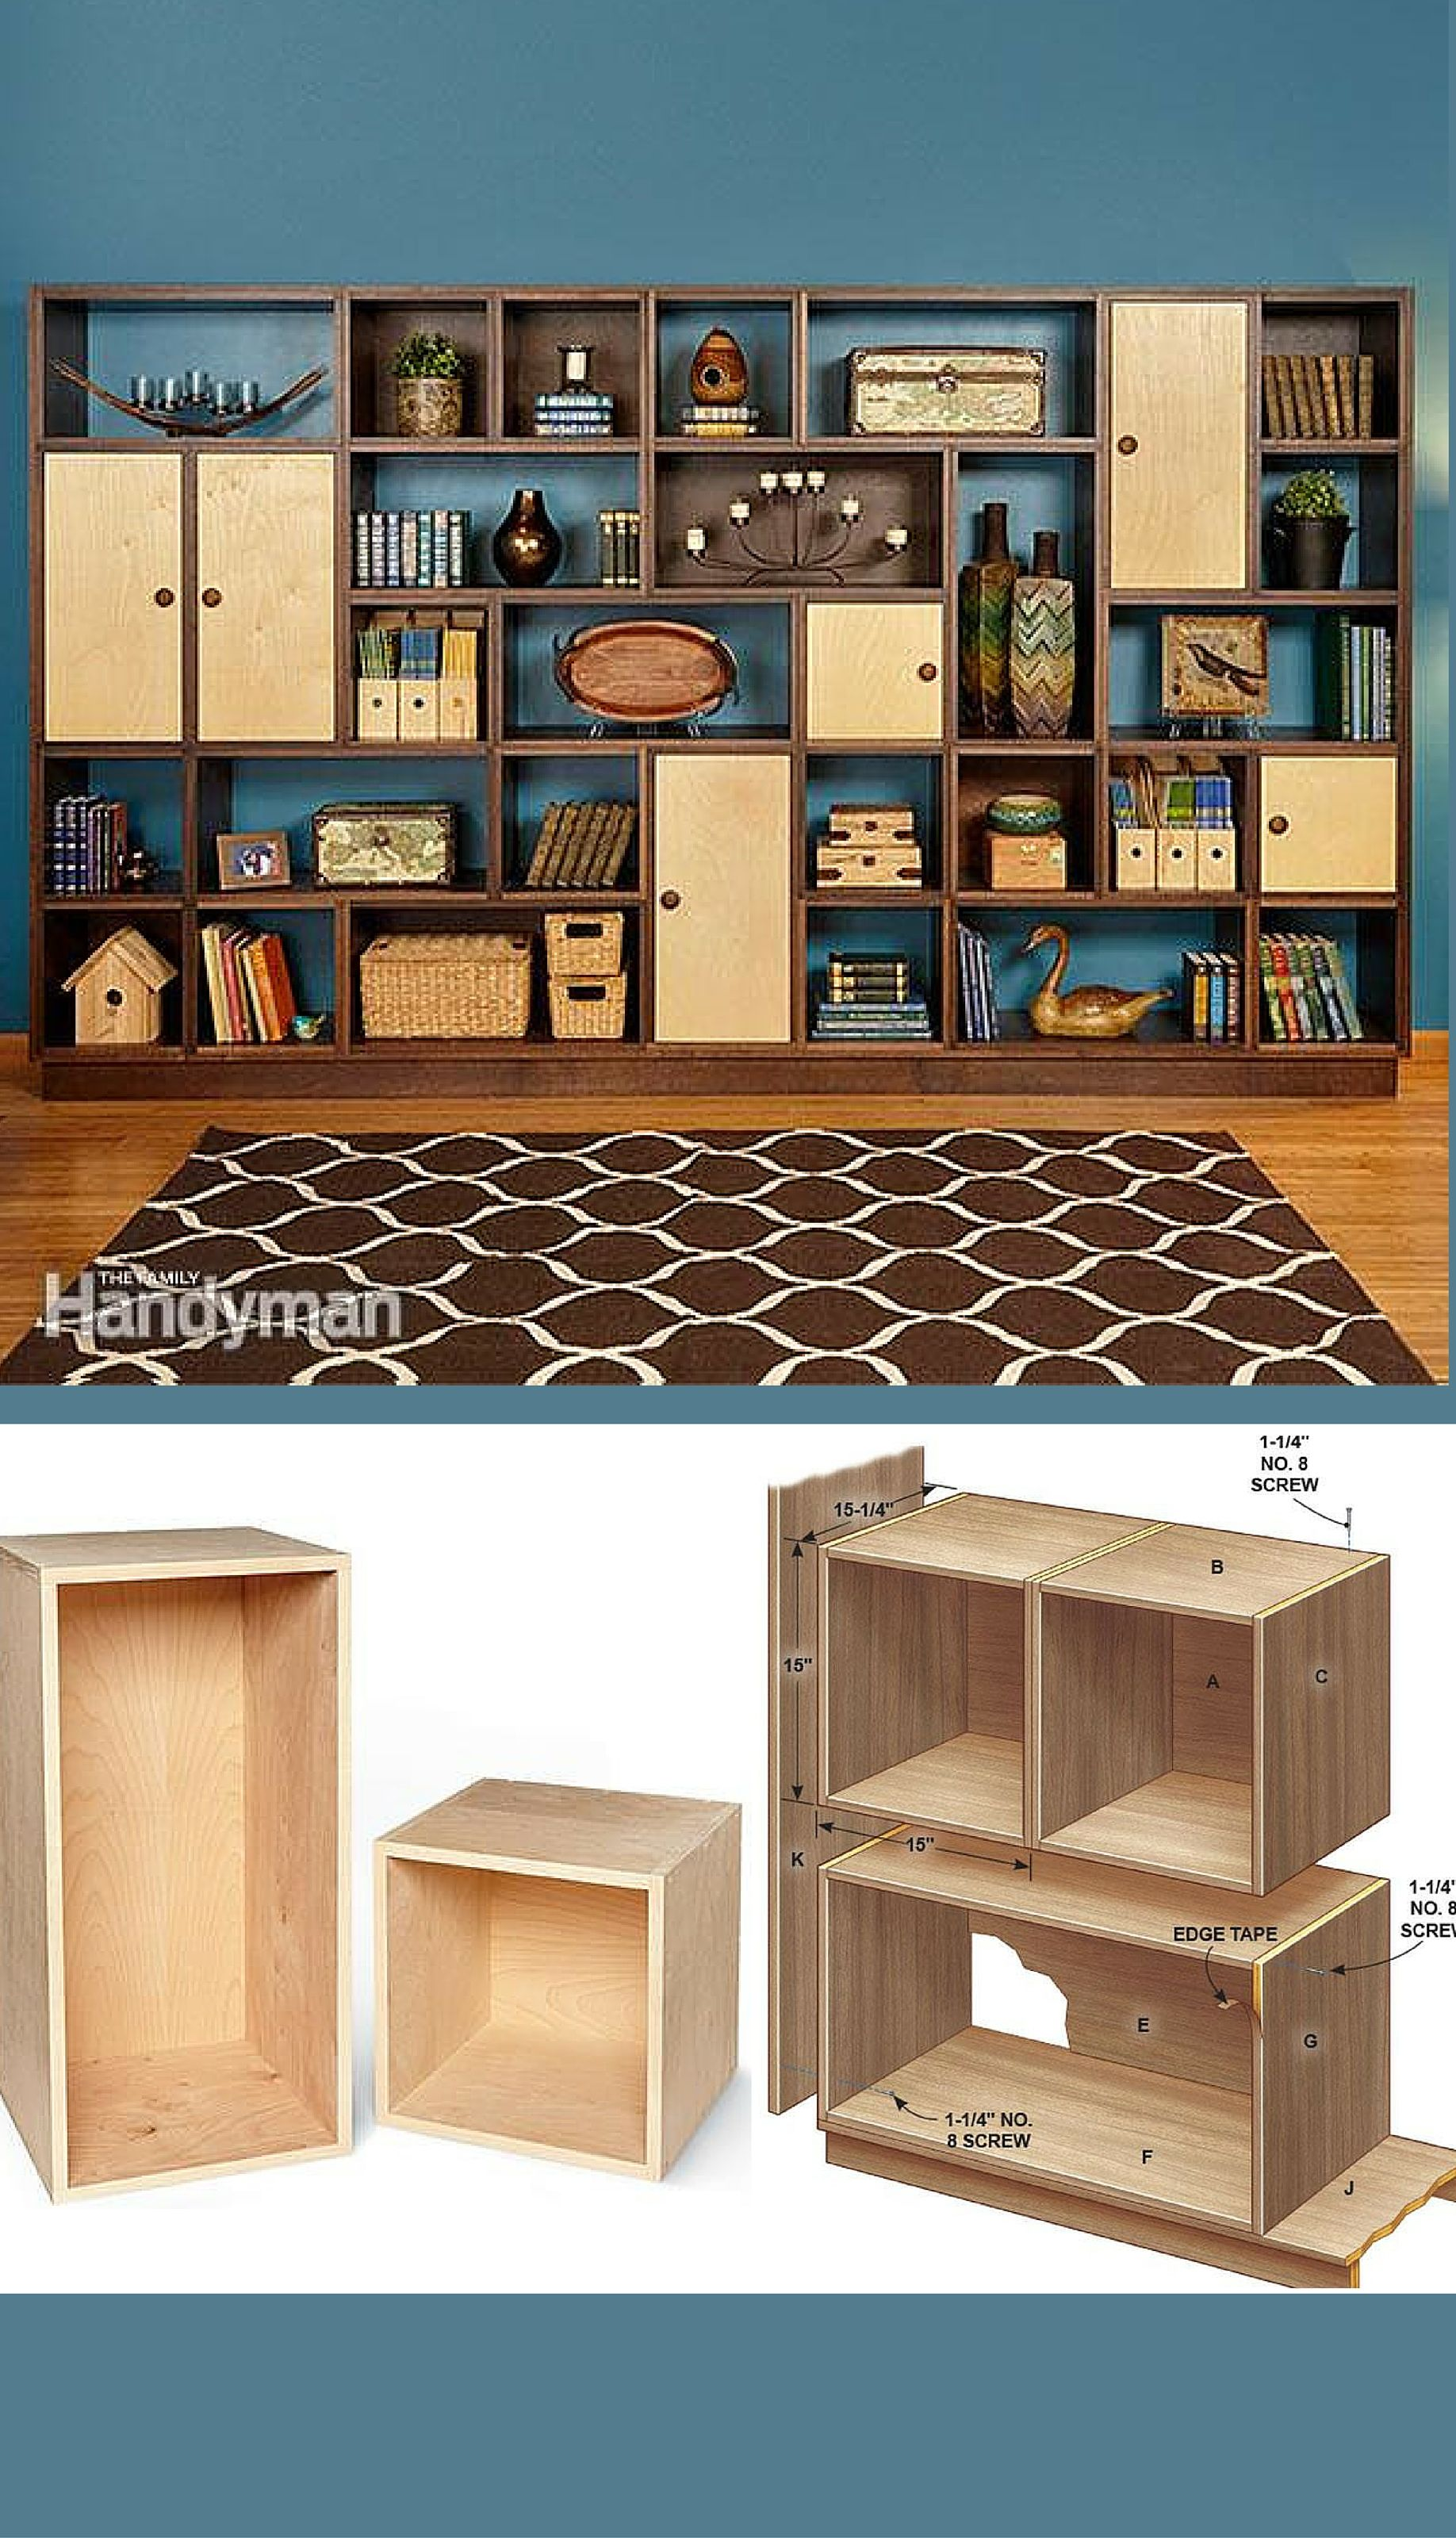 modular masterpiece build fully customizable bookshelf modula joinery floating shelves few the most remarkable woodworking projects wood furnishings basic concepts can discovered